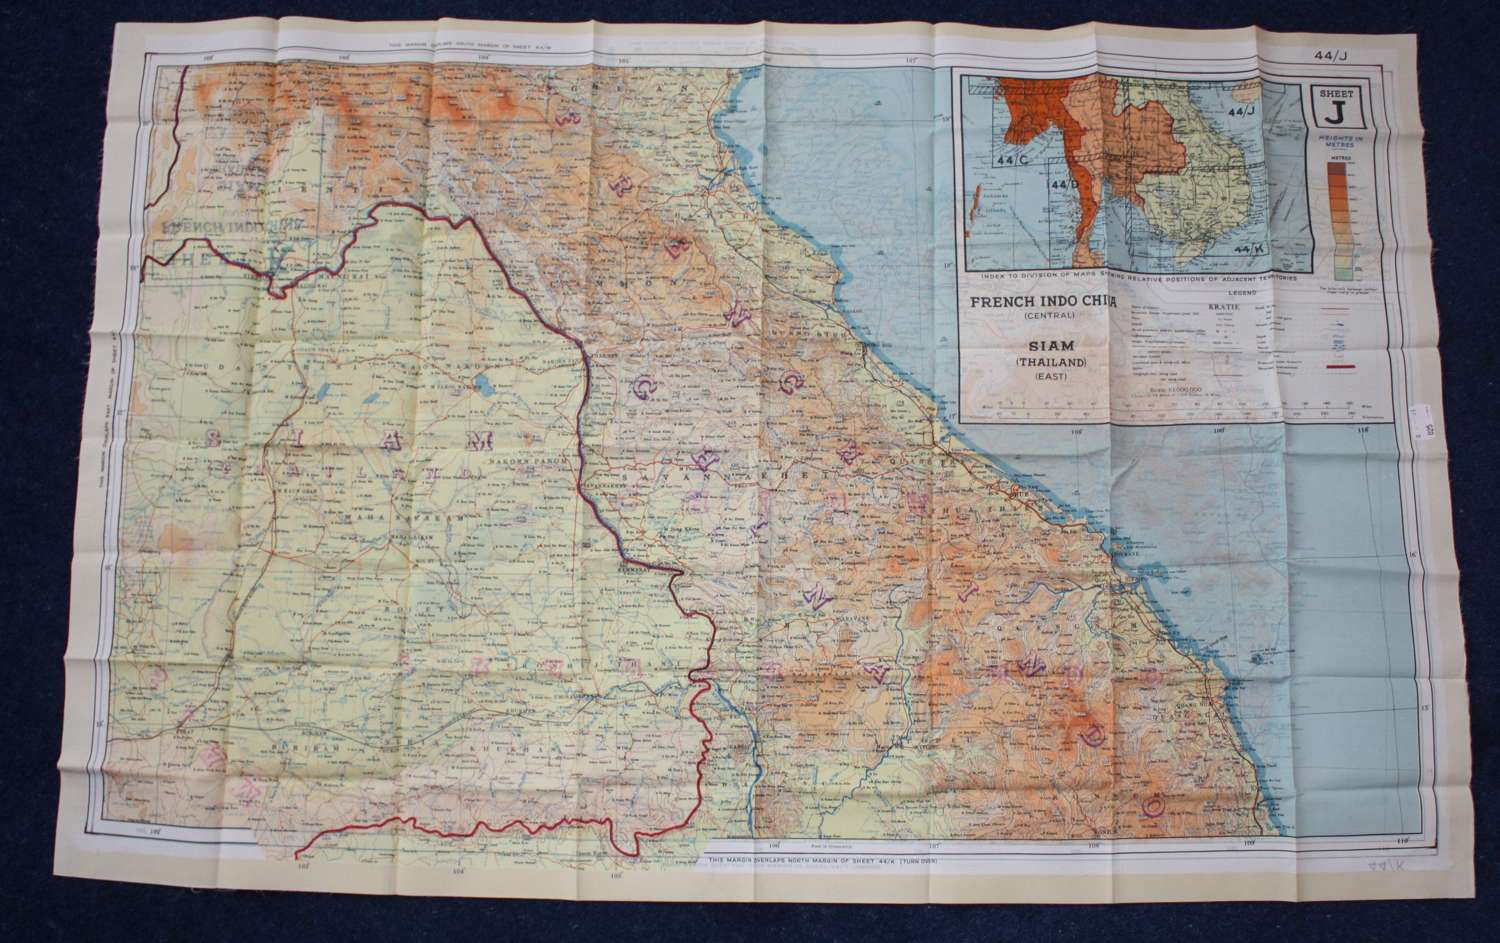 WW2 RAF AIRCREW ESCAPE MAP: SIAM & FRENCH INDO CHINA